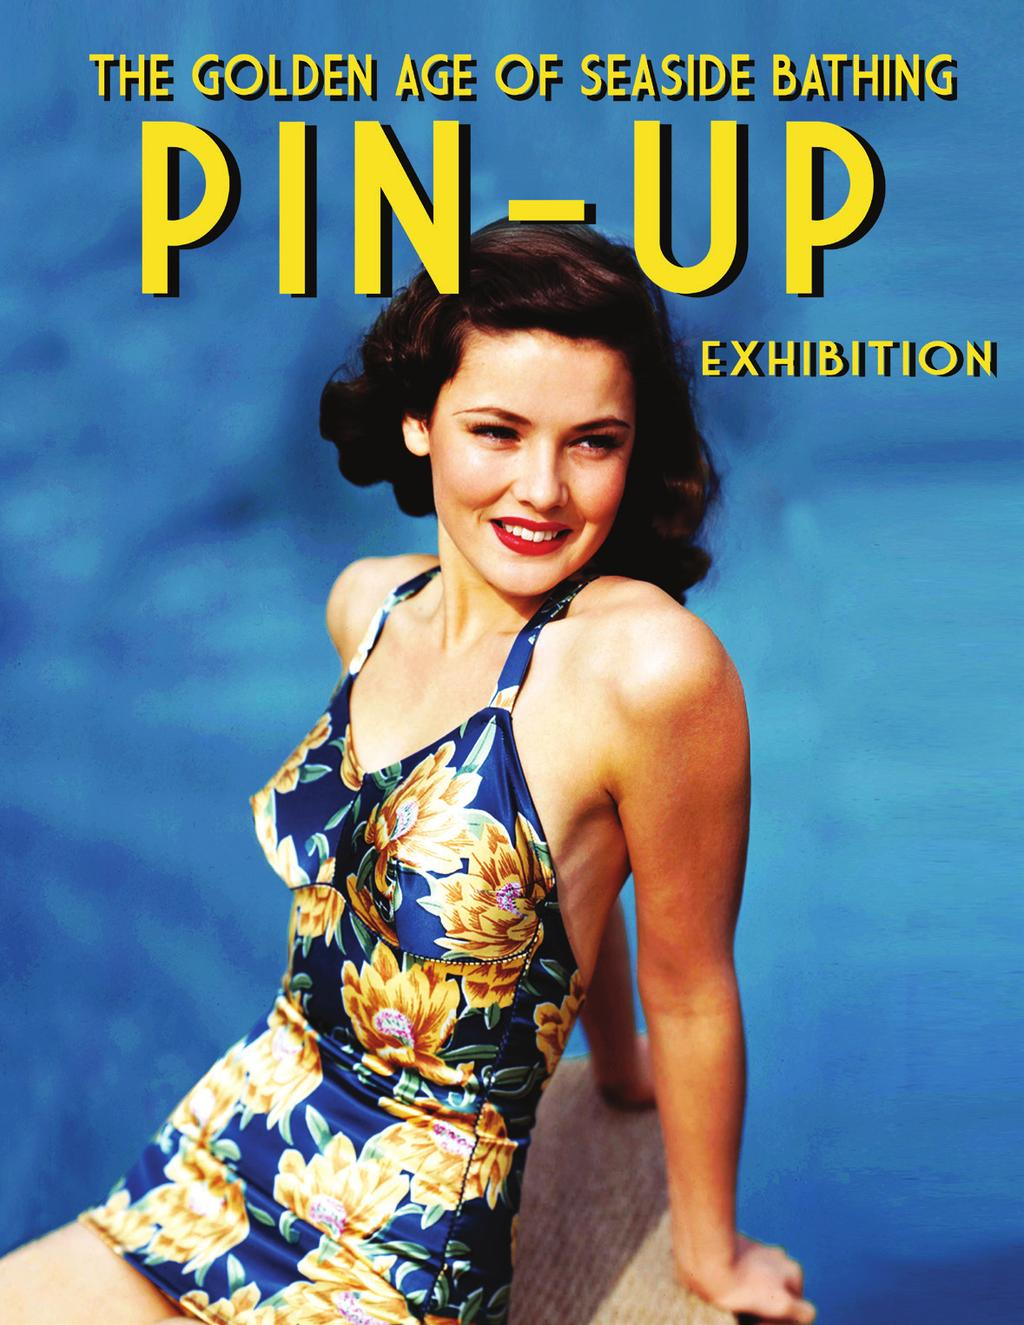 A GLAMOUROUS SUMMER EXHIBITION july 5th - september 4th A tribute to the swimsuits of the 1950s Pin-Ups, sublime pieces of the feminine wardrobe From July 5th to September 4th 2017 Galerie Joseph 7